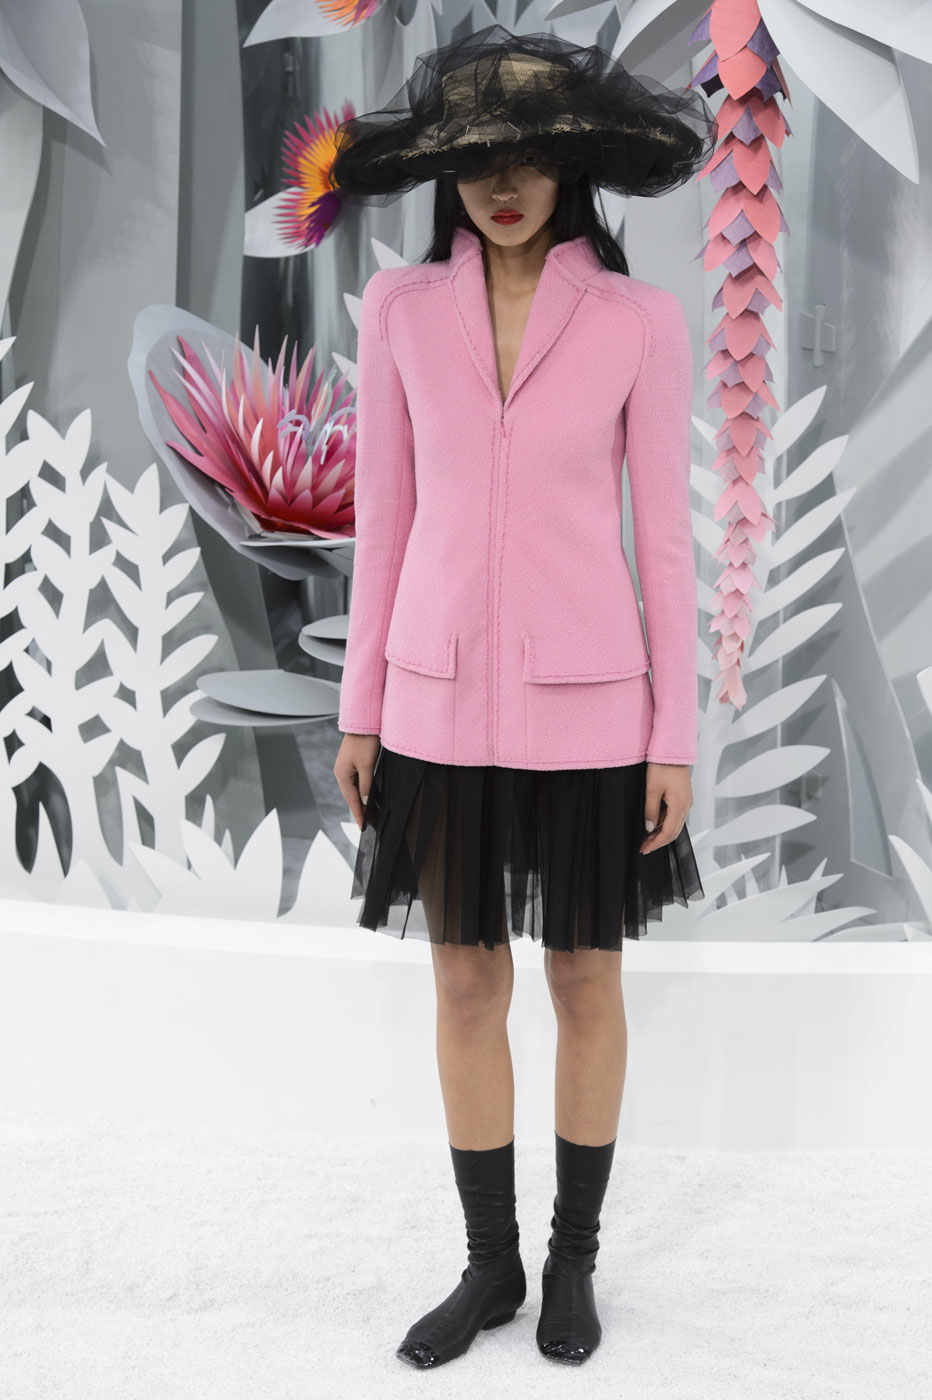 Chanel-fashion-runway-show-haute-couture-paris-spring-summer-2015-the-impression-015